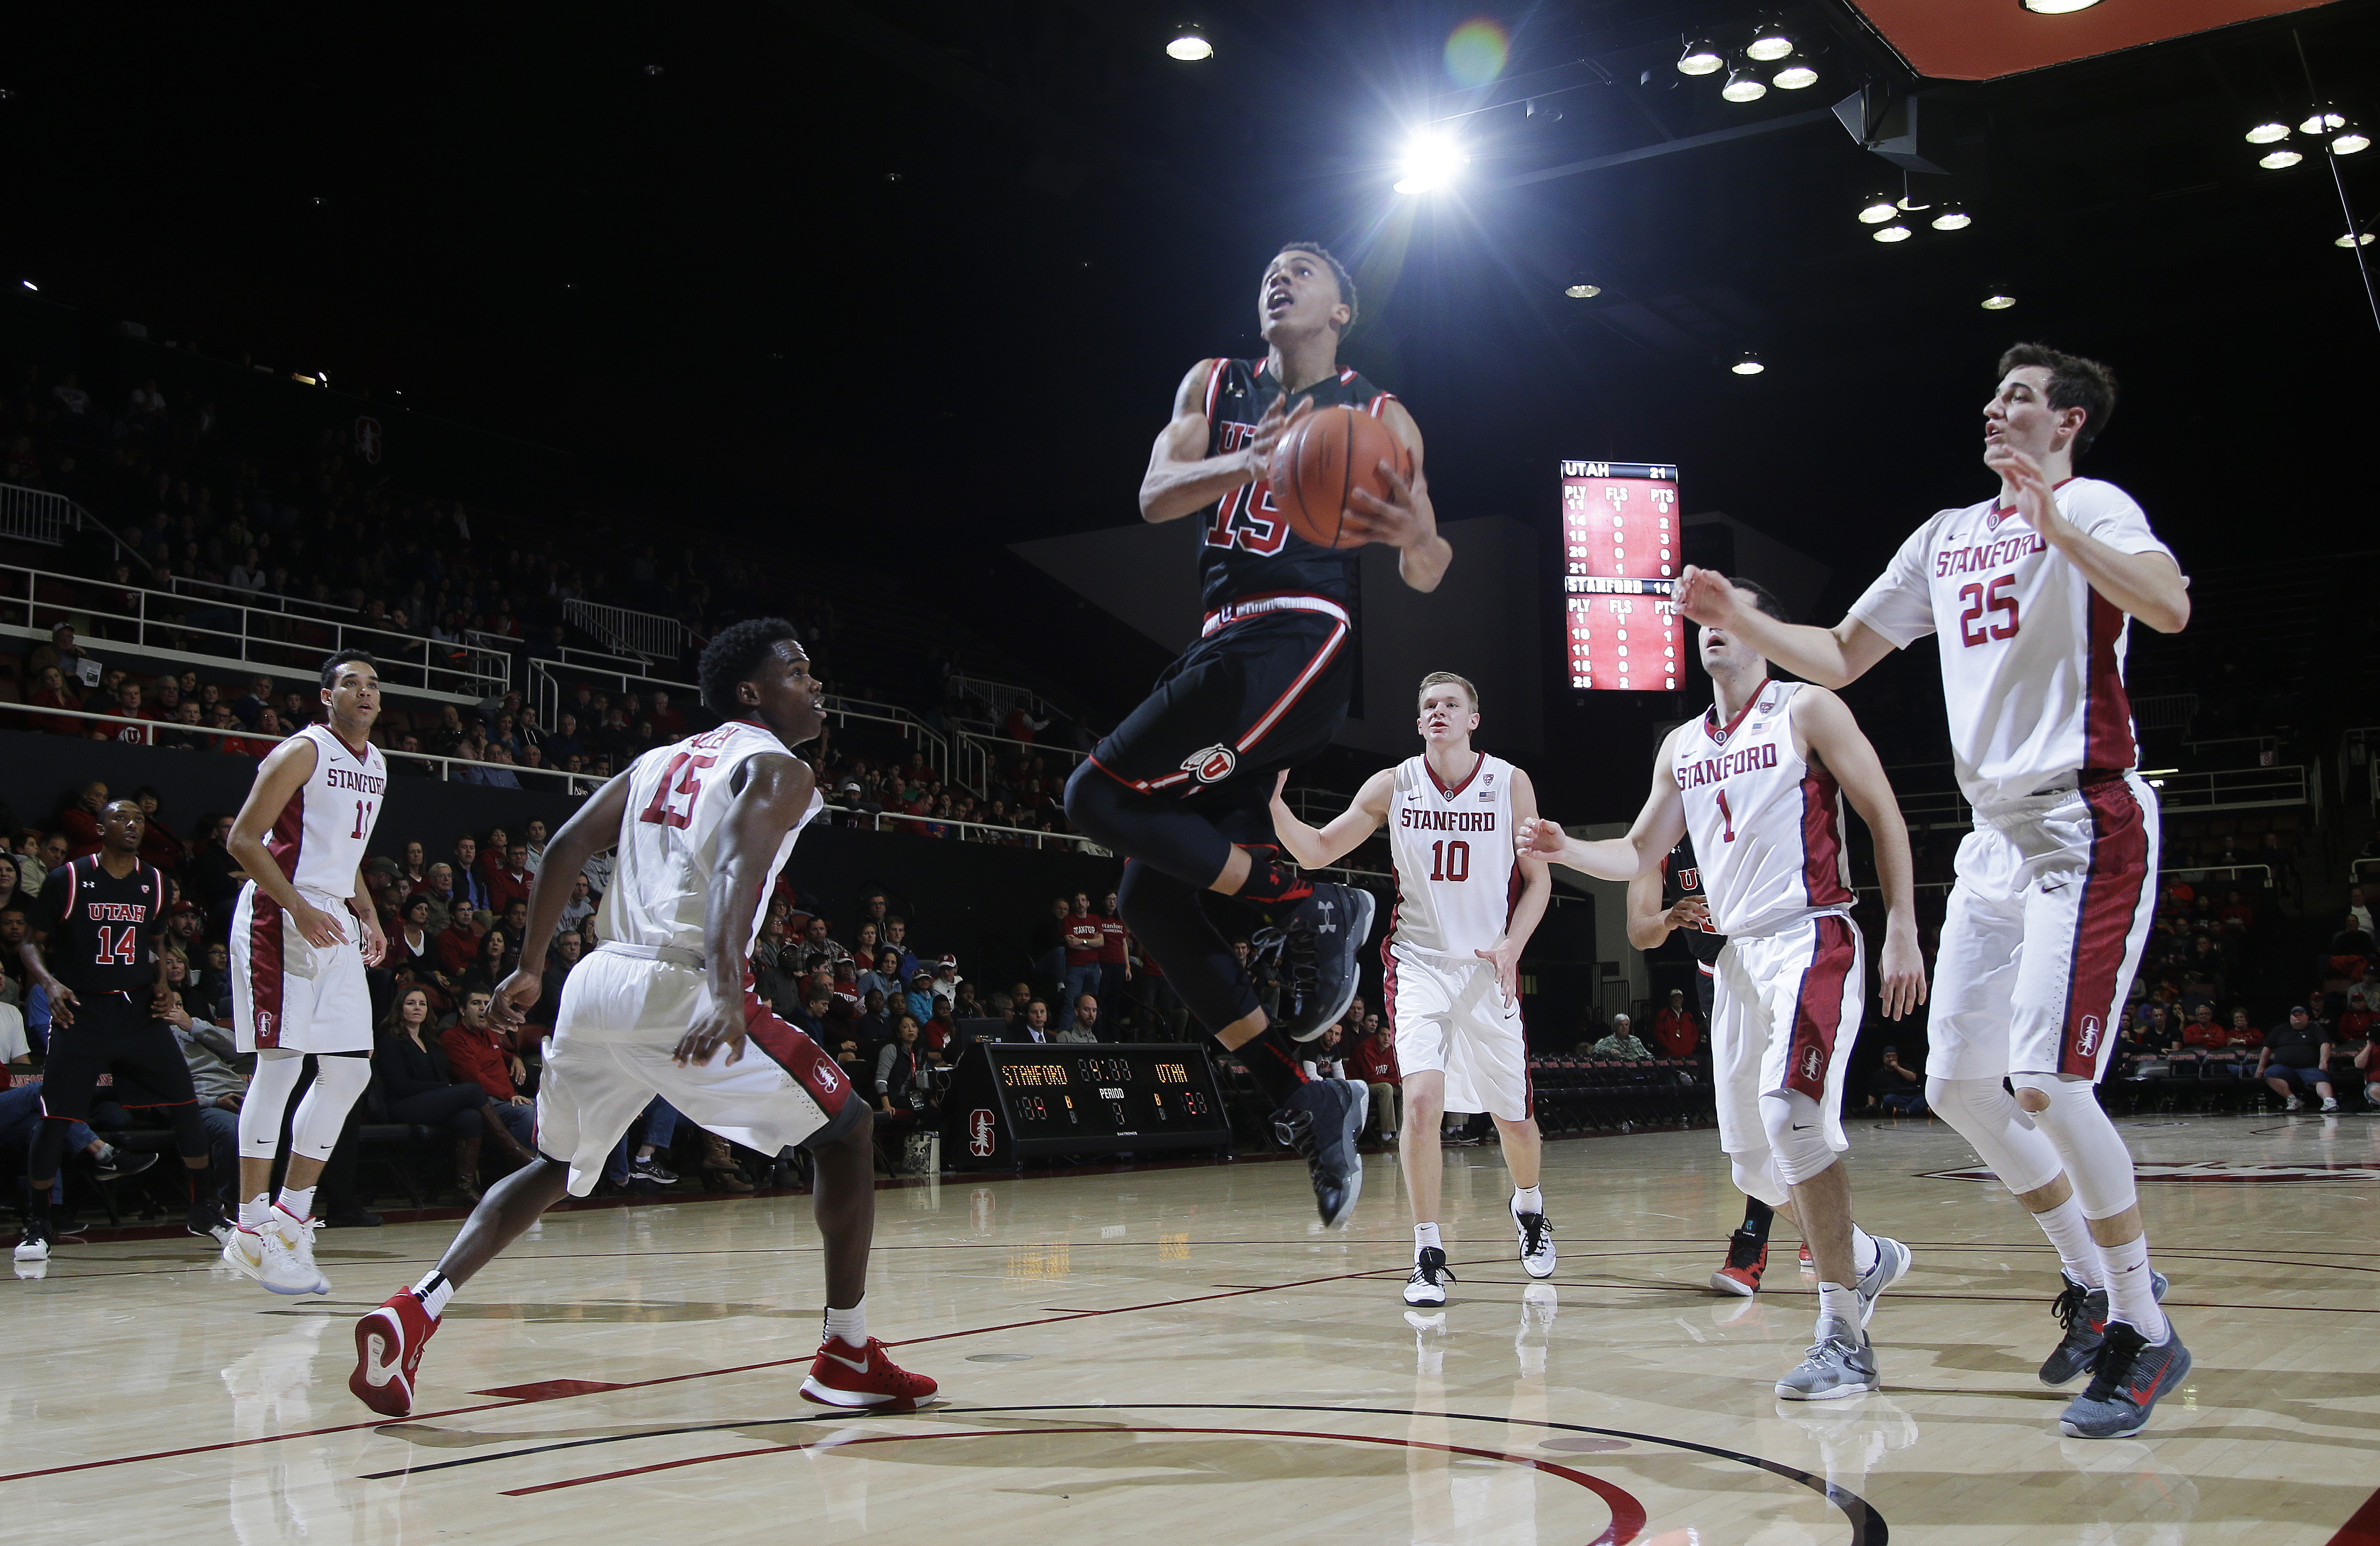 Utah guard Lorenzo Bonam (15) drives to the basket against Stanford during the first half of an NCAA college basketball game Friday, Jan. 1, 2016, in Stanford, Calif. (AP Photo/Marcio Jose Sanchez)